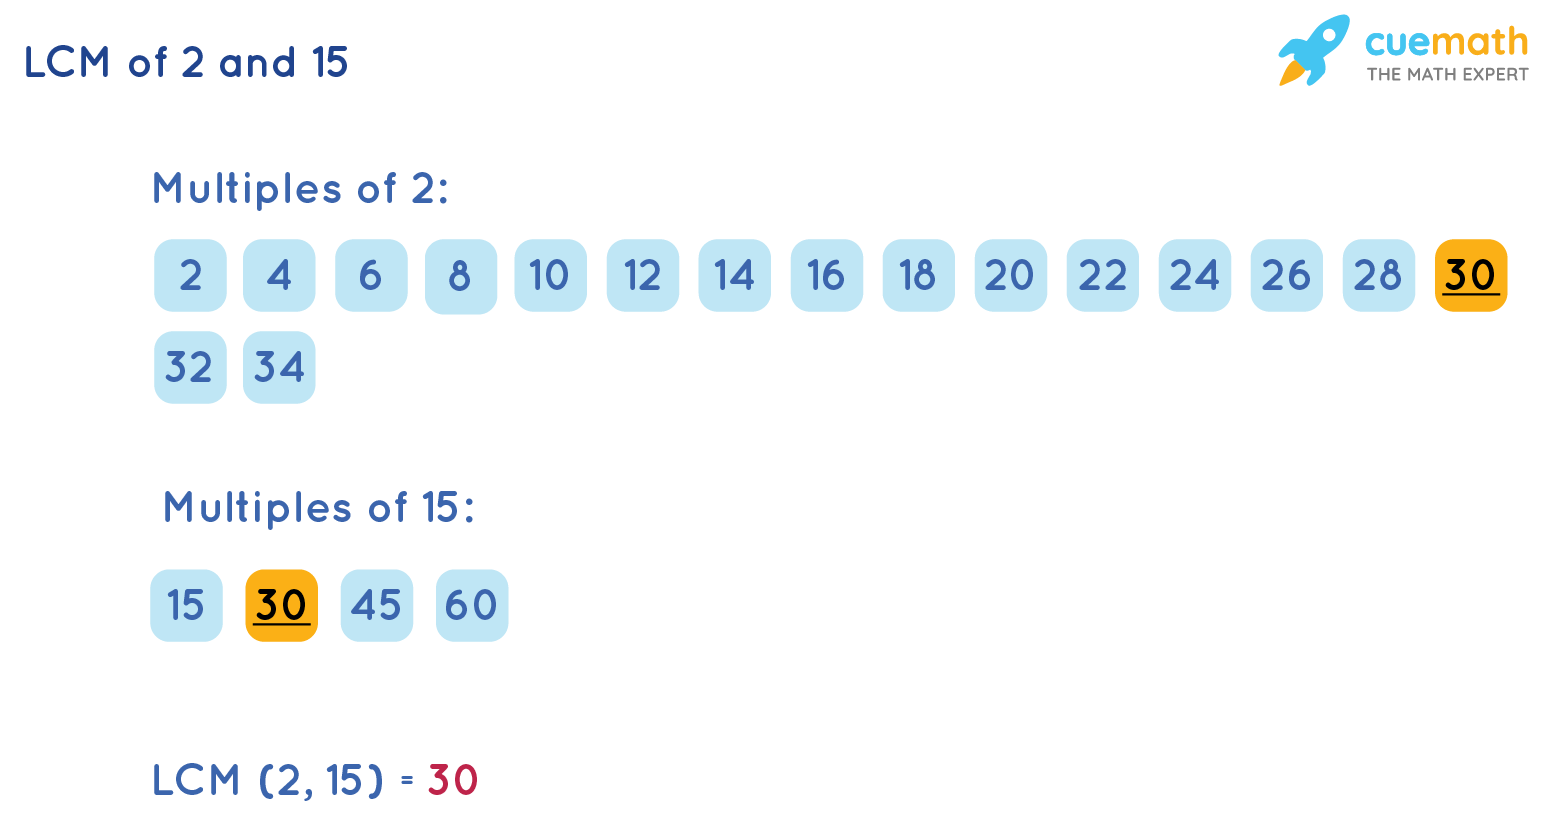 LCM of 2 and 15 by Listing Method